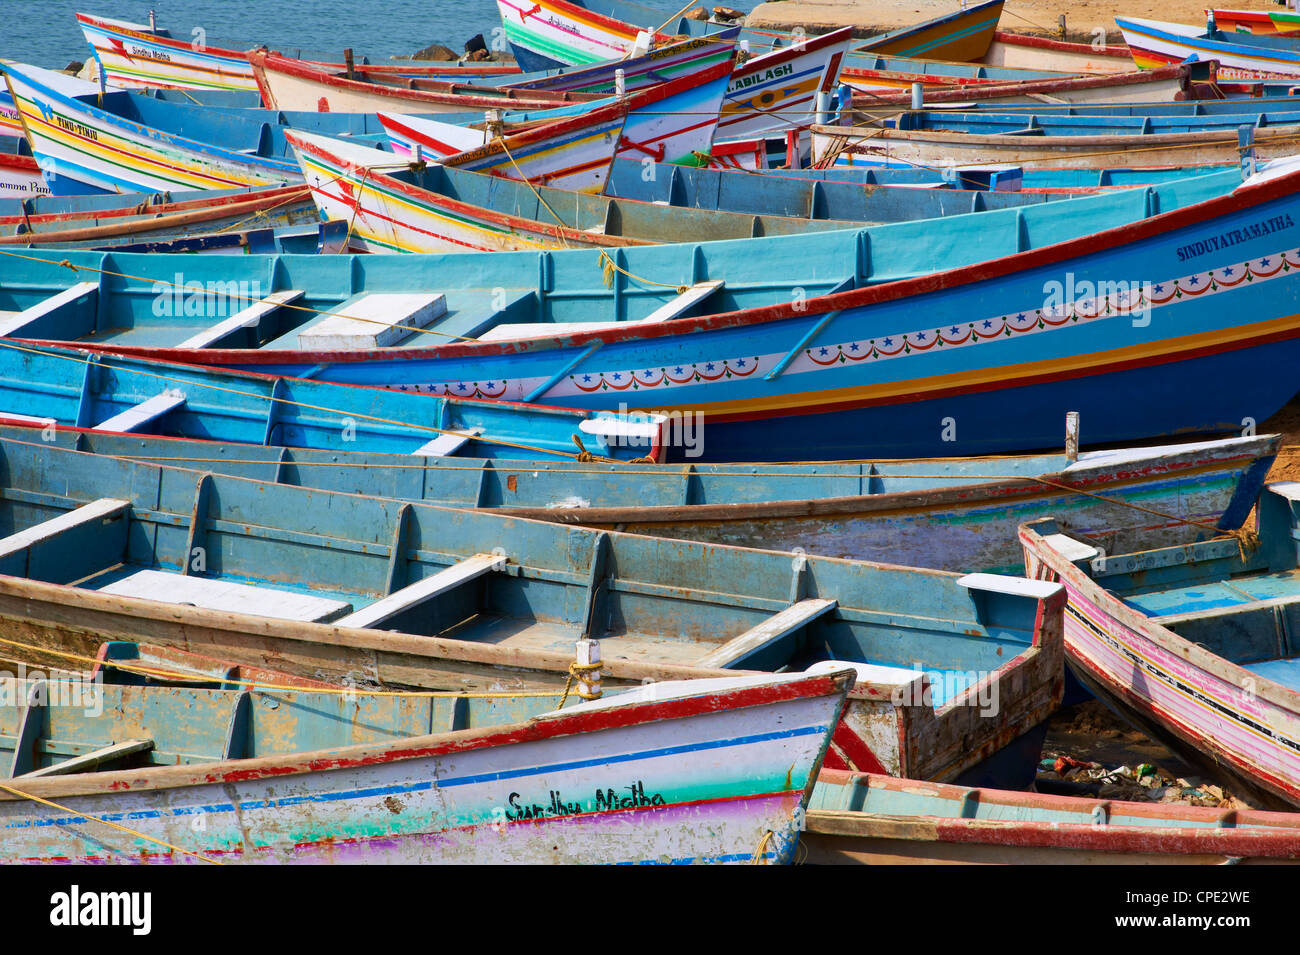 Vizhinjam, fishing harbour near Kovalam, Kerala, India, Asia - Stock Image